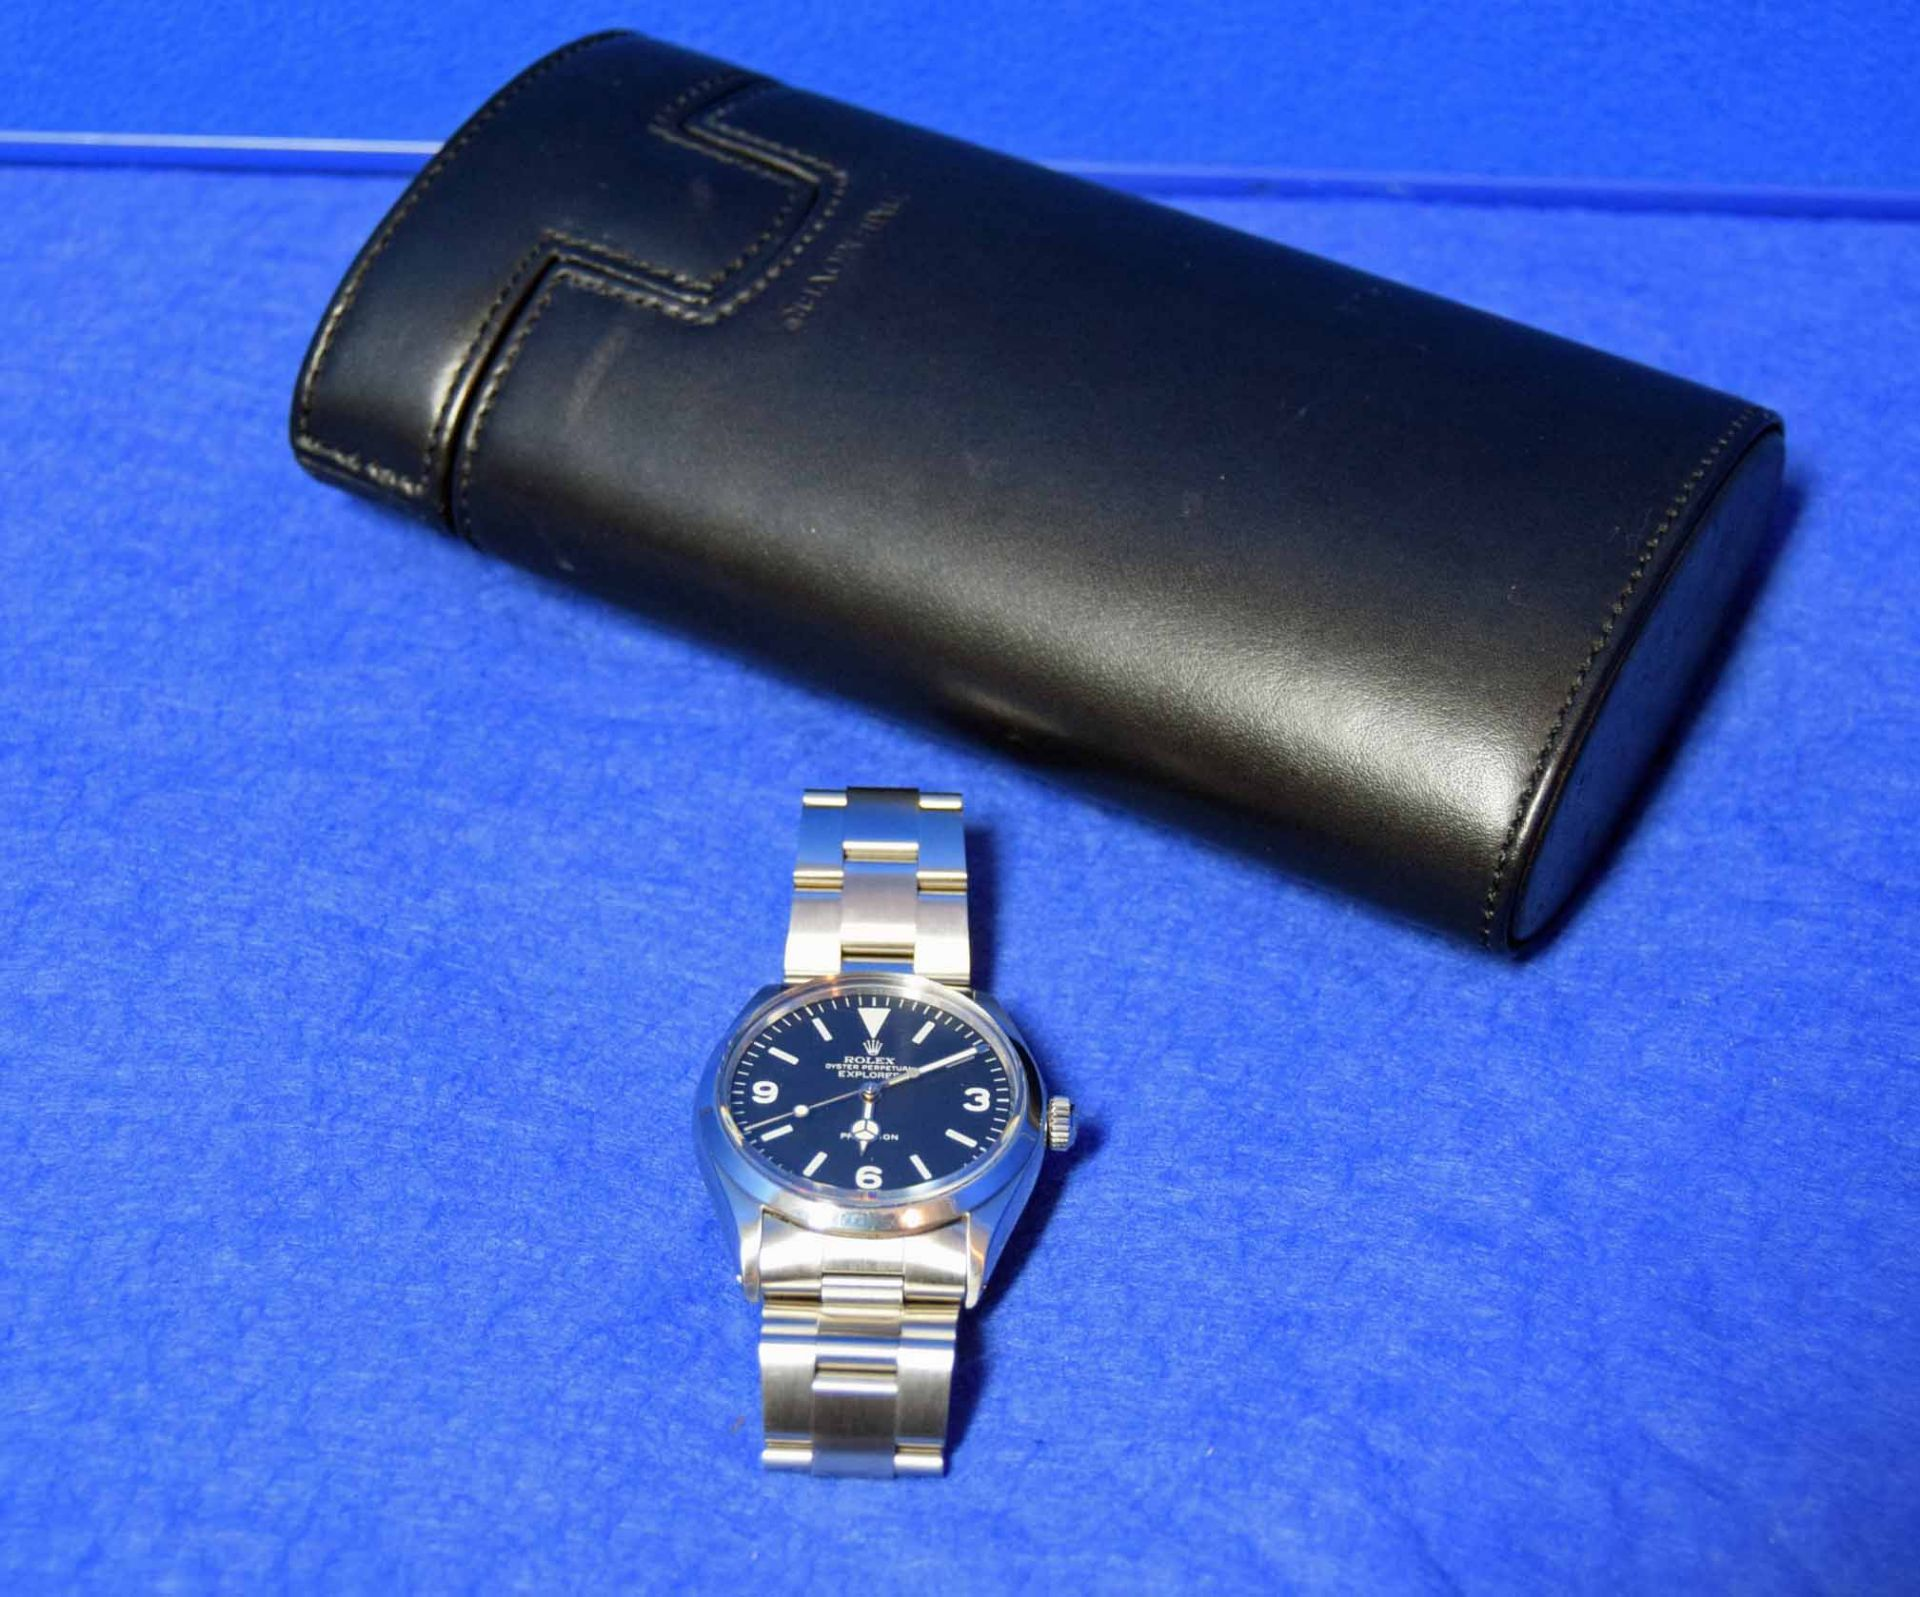 A ROLEX Explorer Watch in a 36mm dia. Oyster Steel Case, a Black Dial Large Hour Markers and - Image 4 of 6